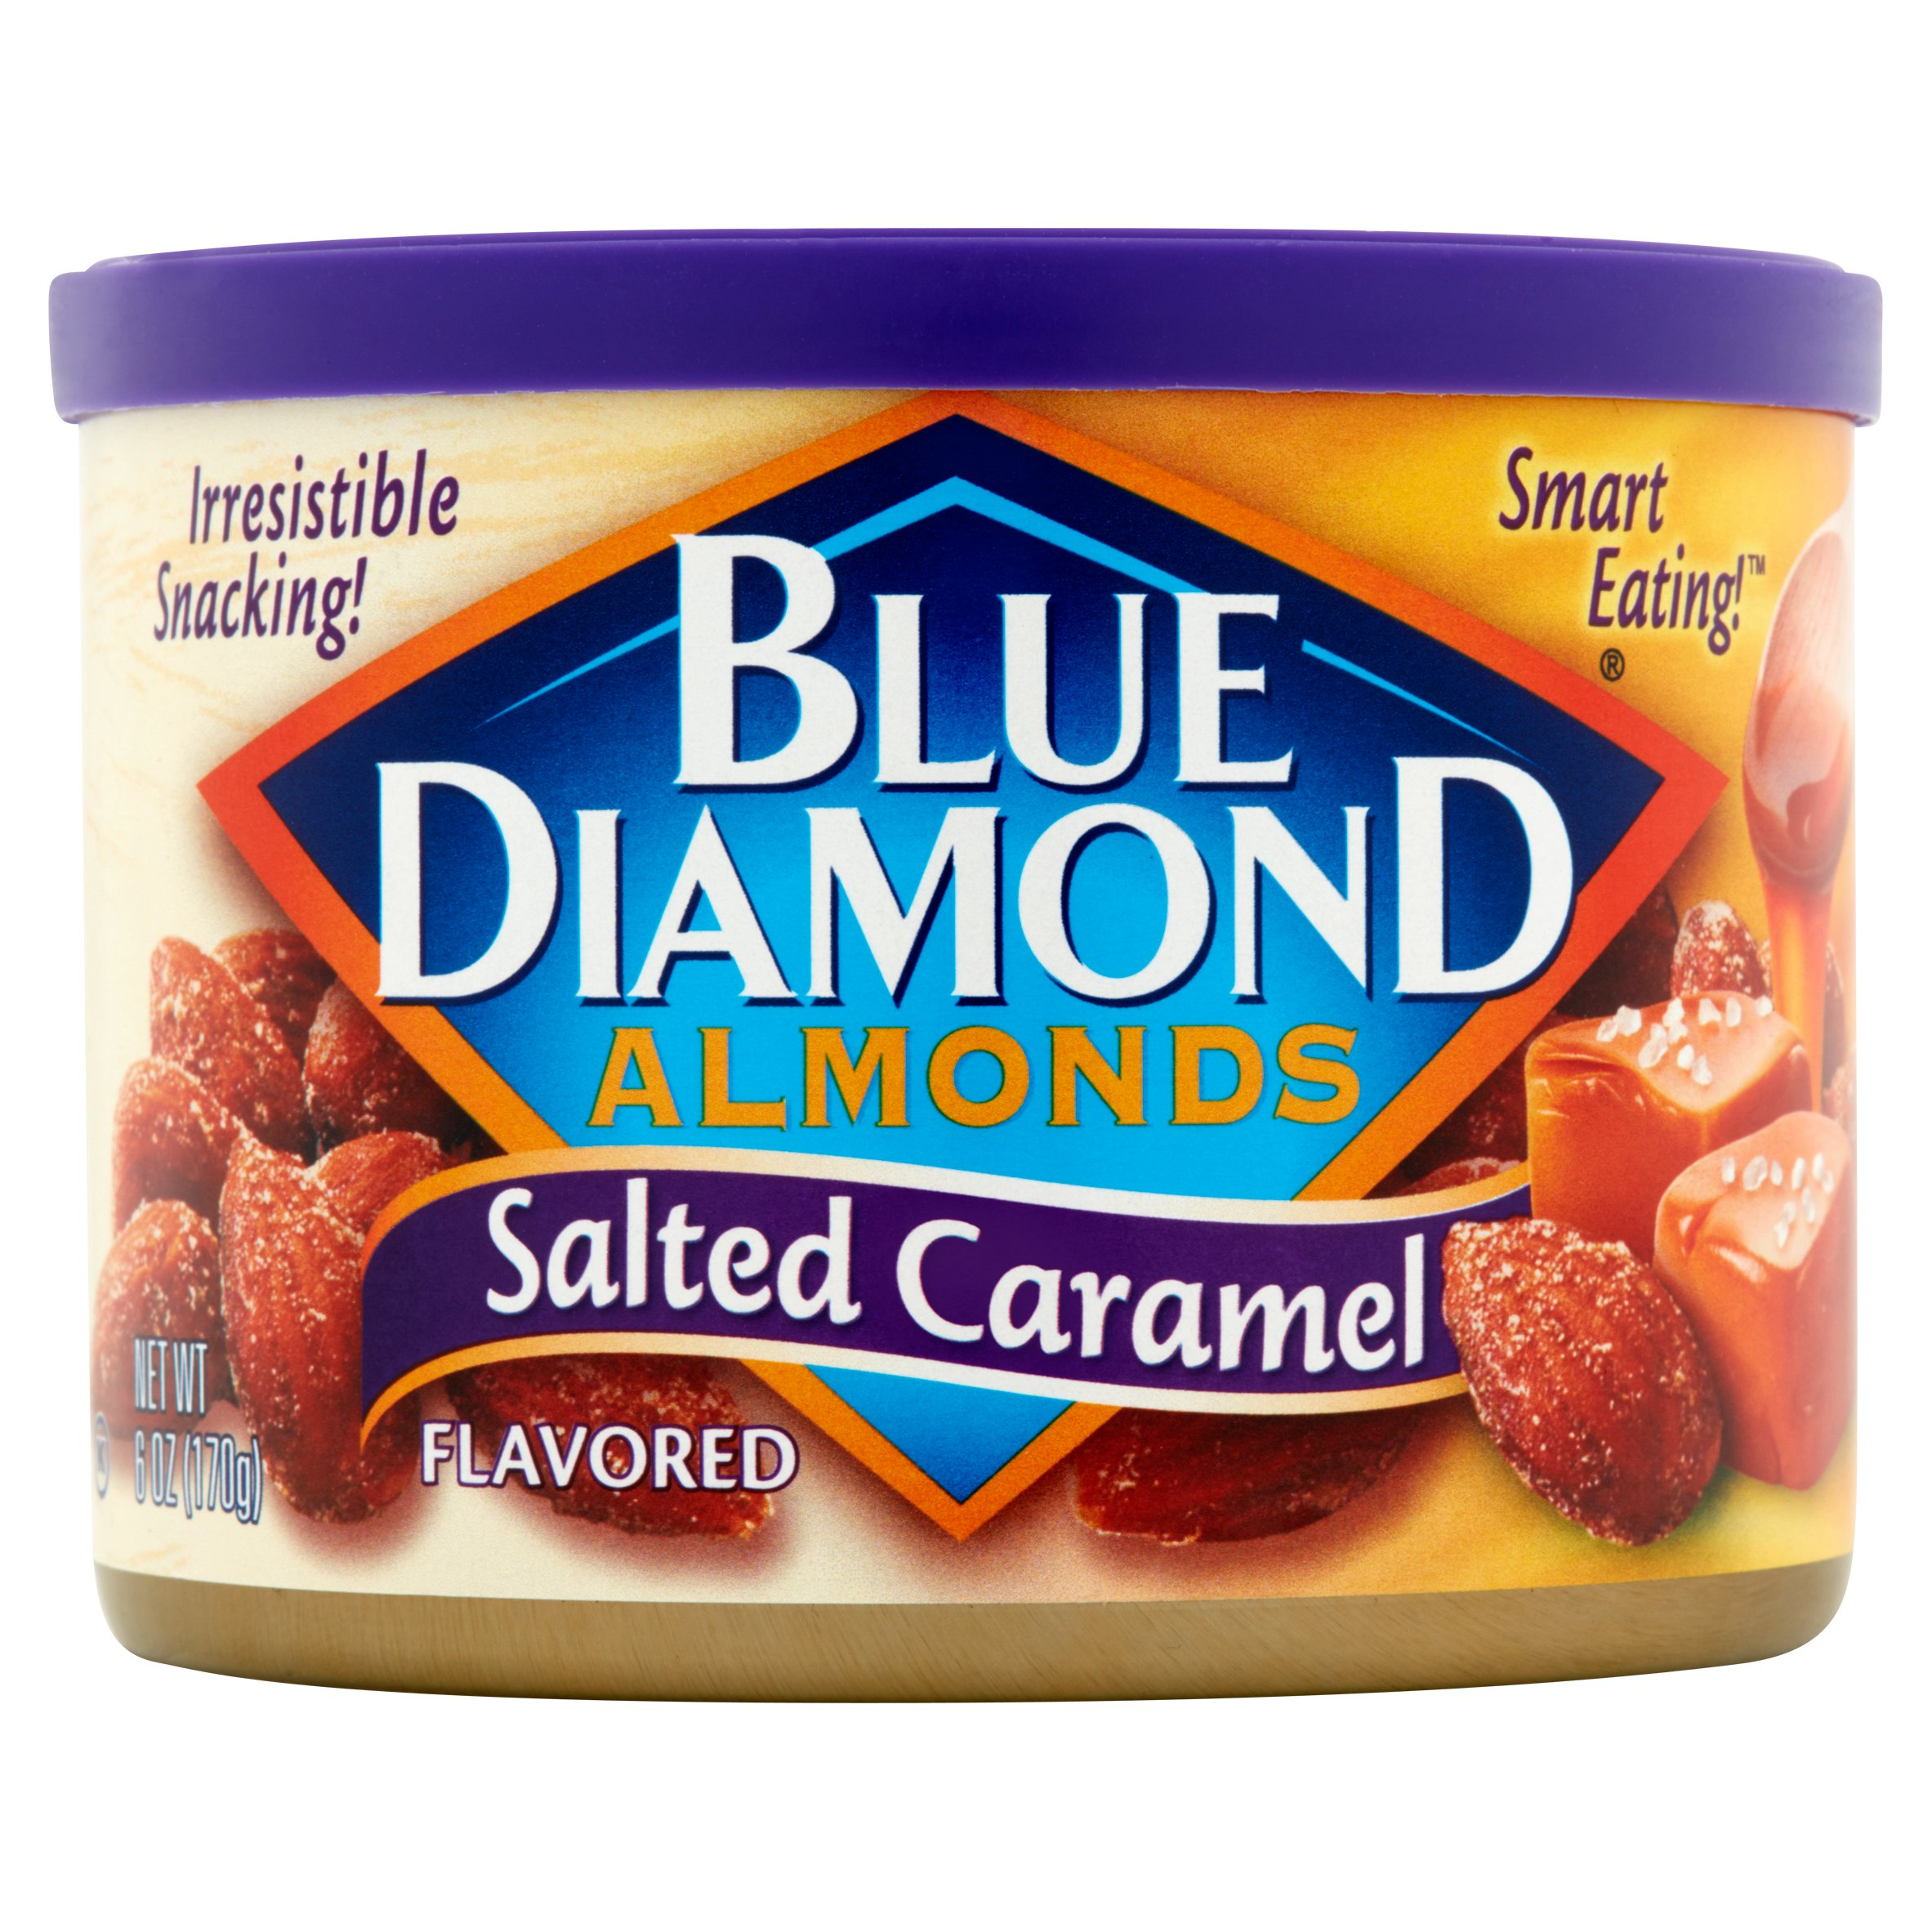 Blue Diamond Salted Caramel Flavored Almonds, 6 oz by Blue Diamond Growers